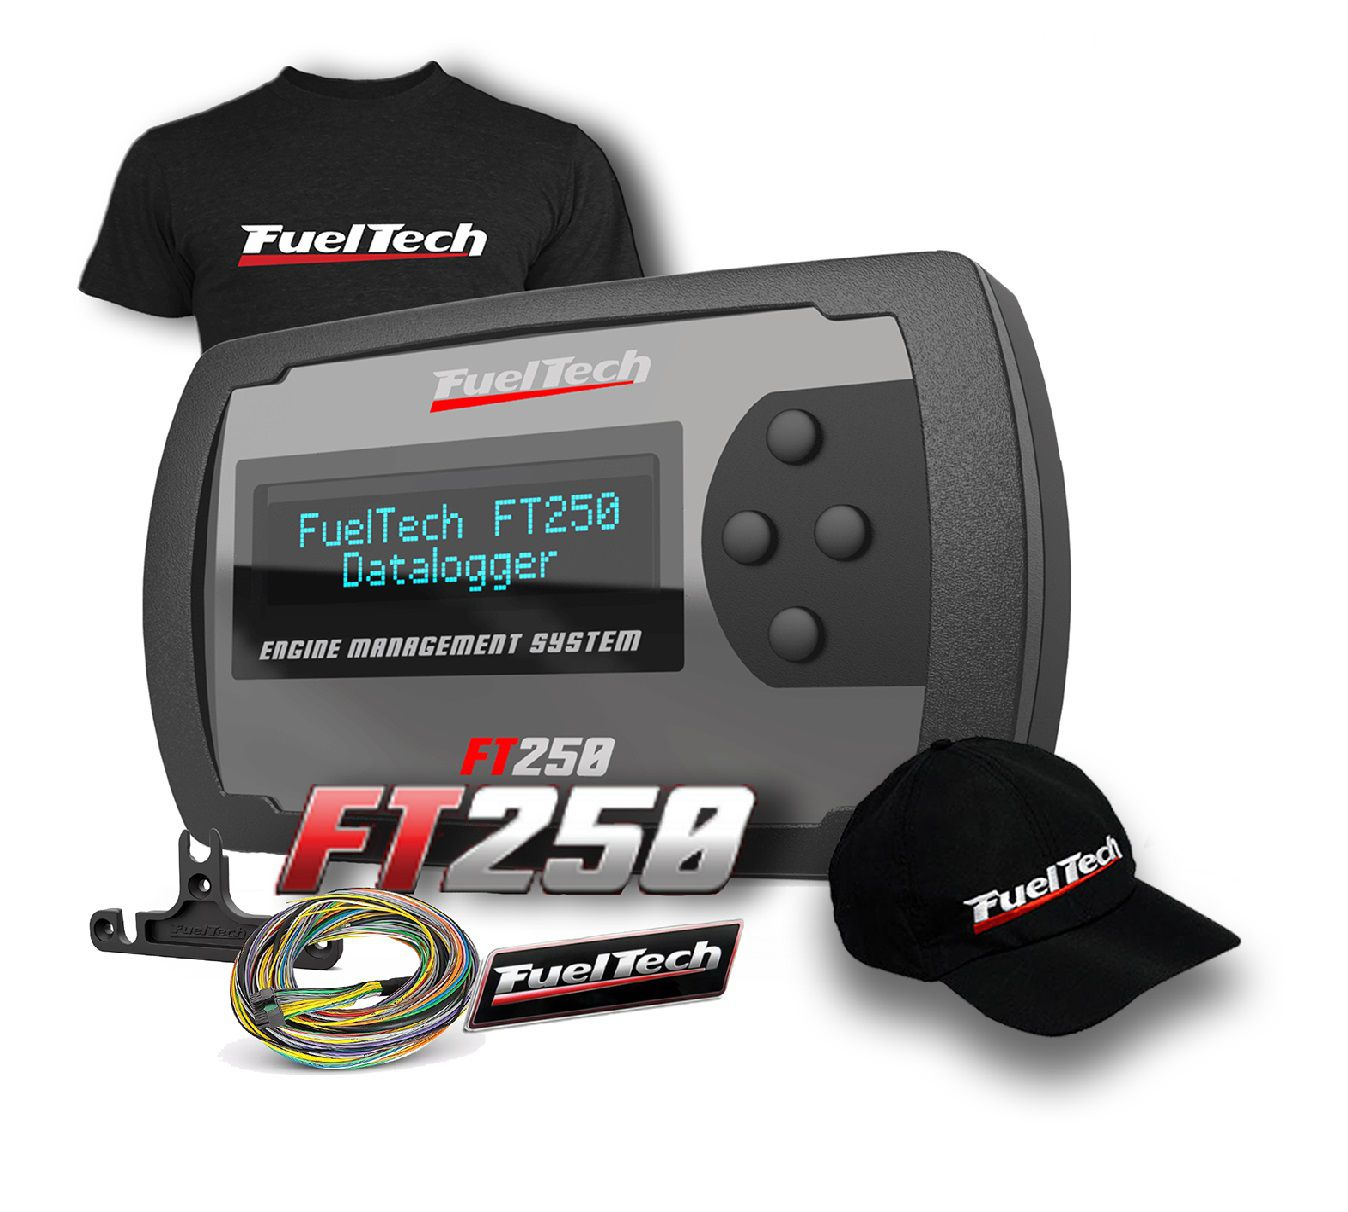 Fueltech FT 250 + camiseta  + bone